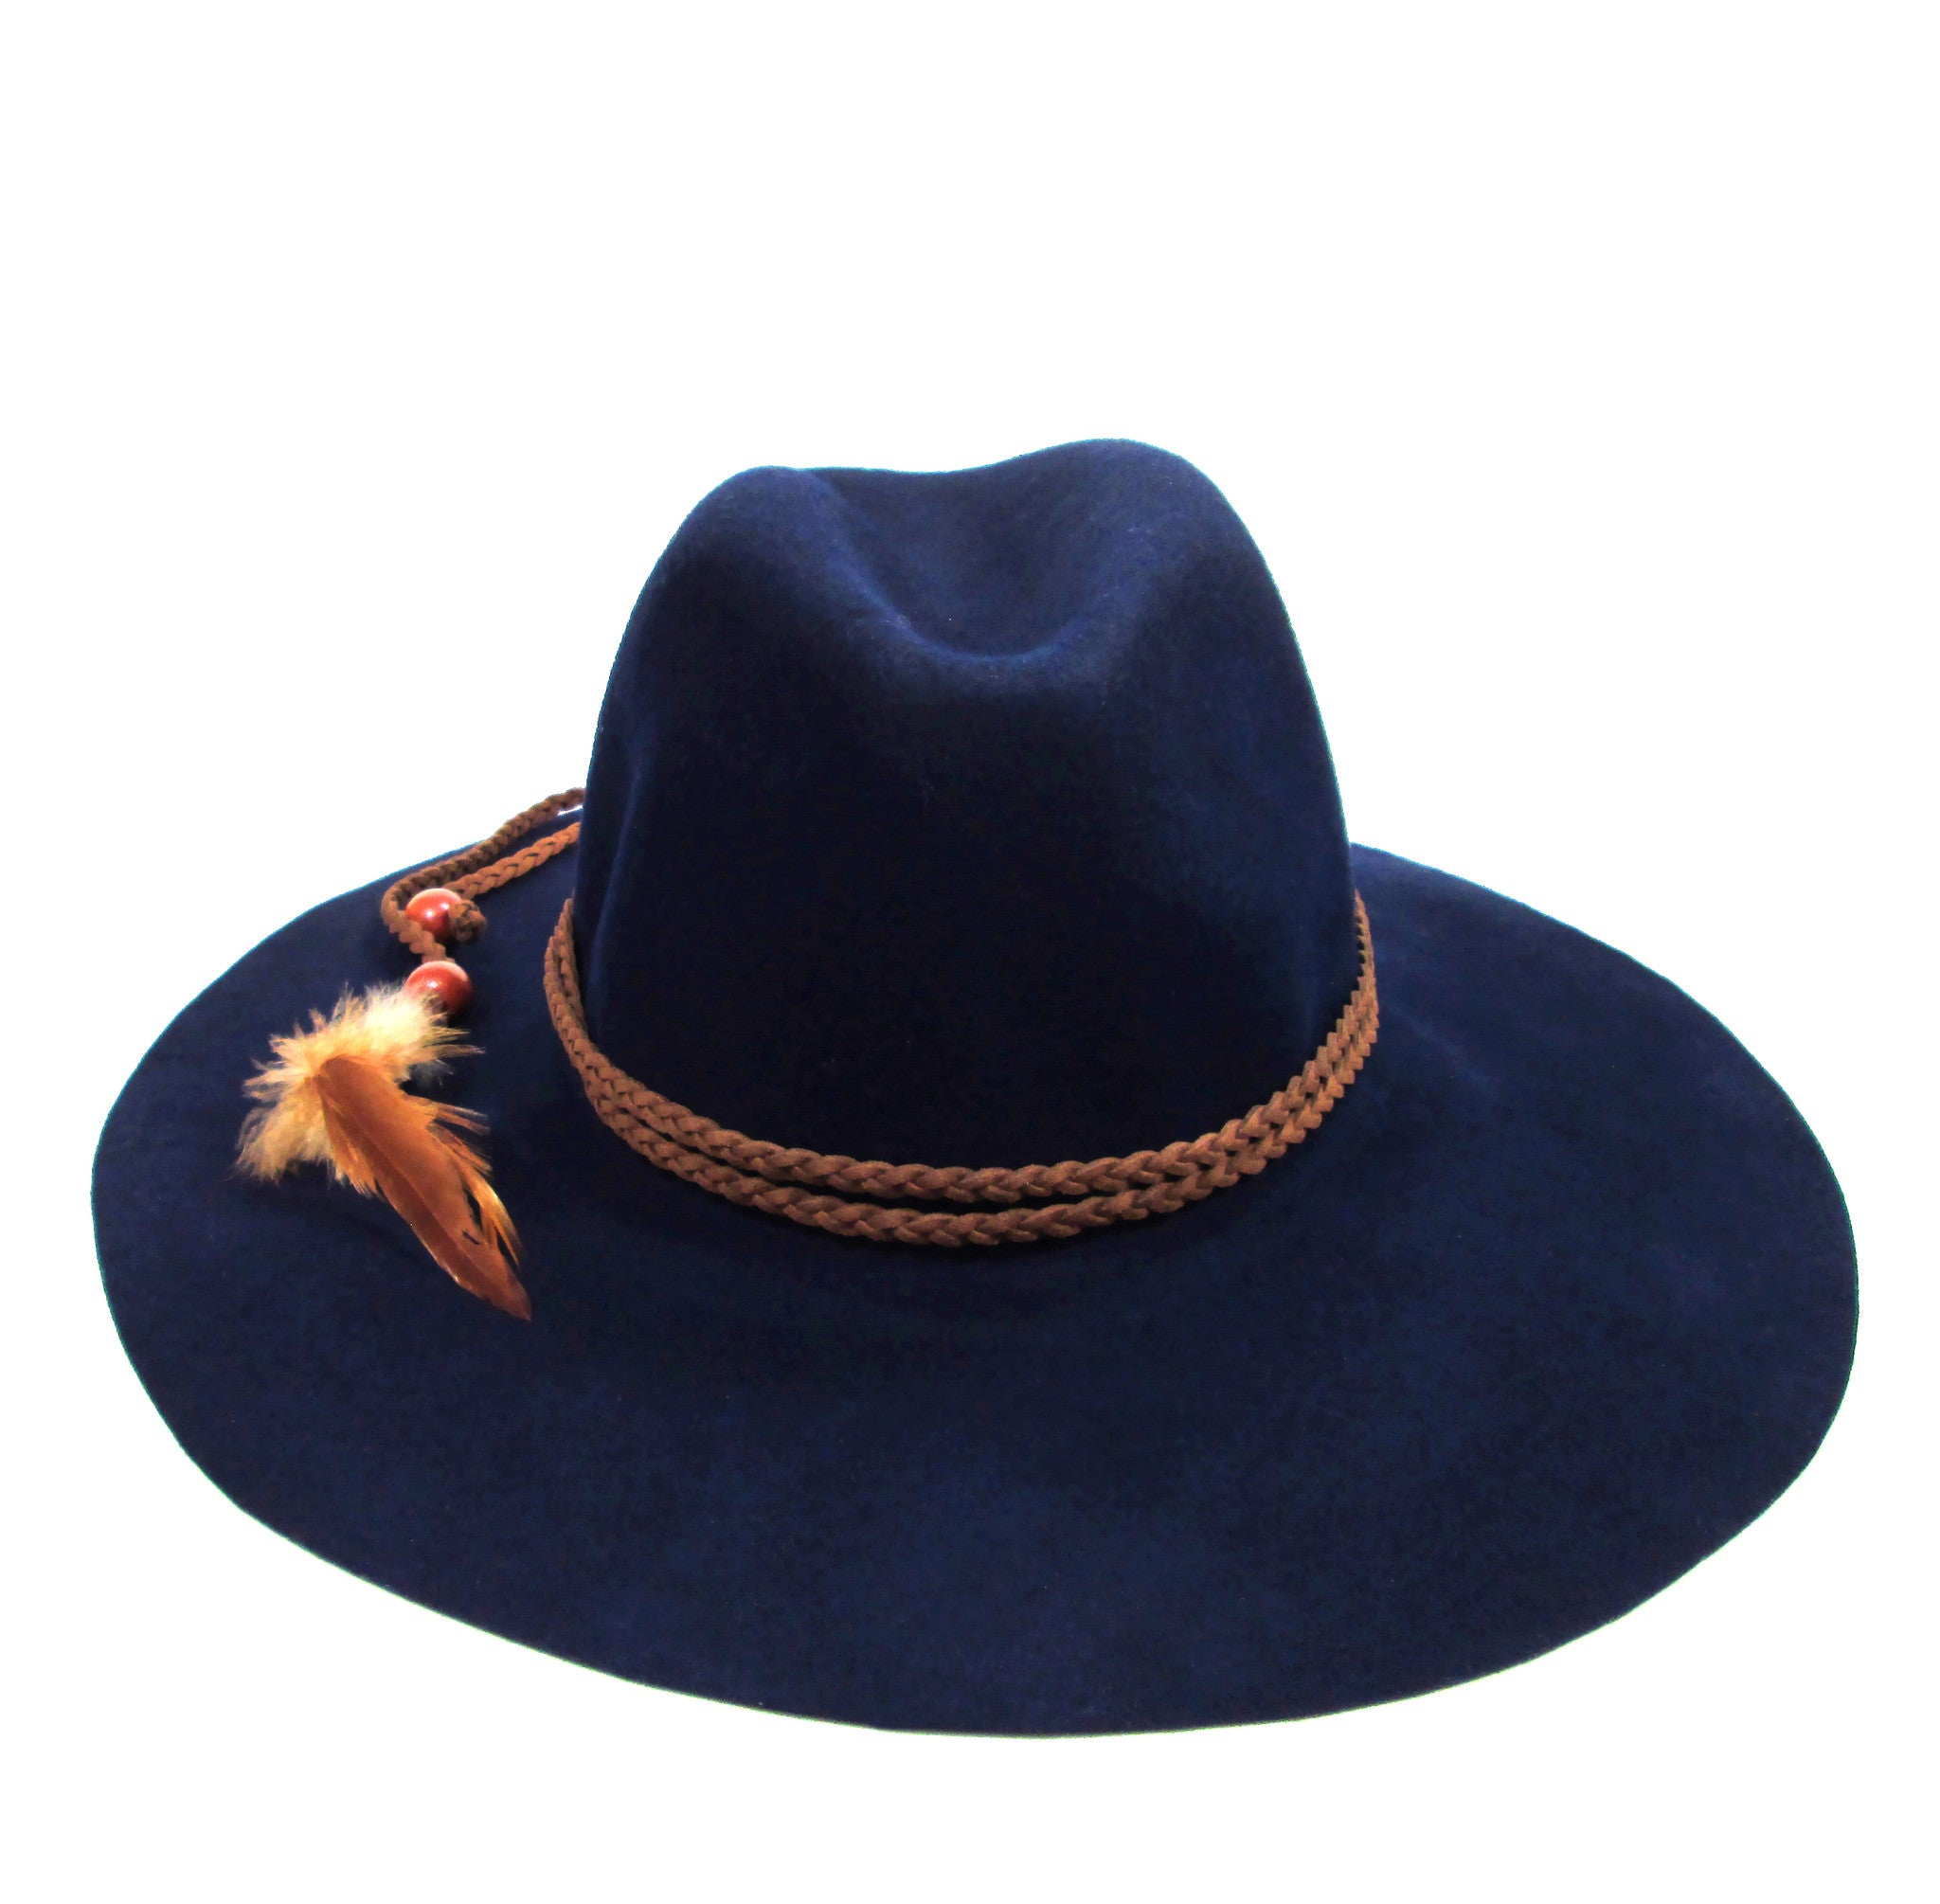 Lovely Bird Buenes Aires Fedora / Navy